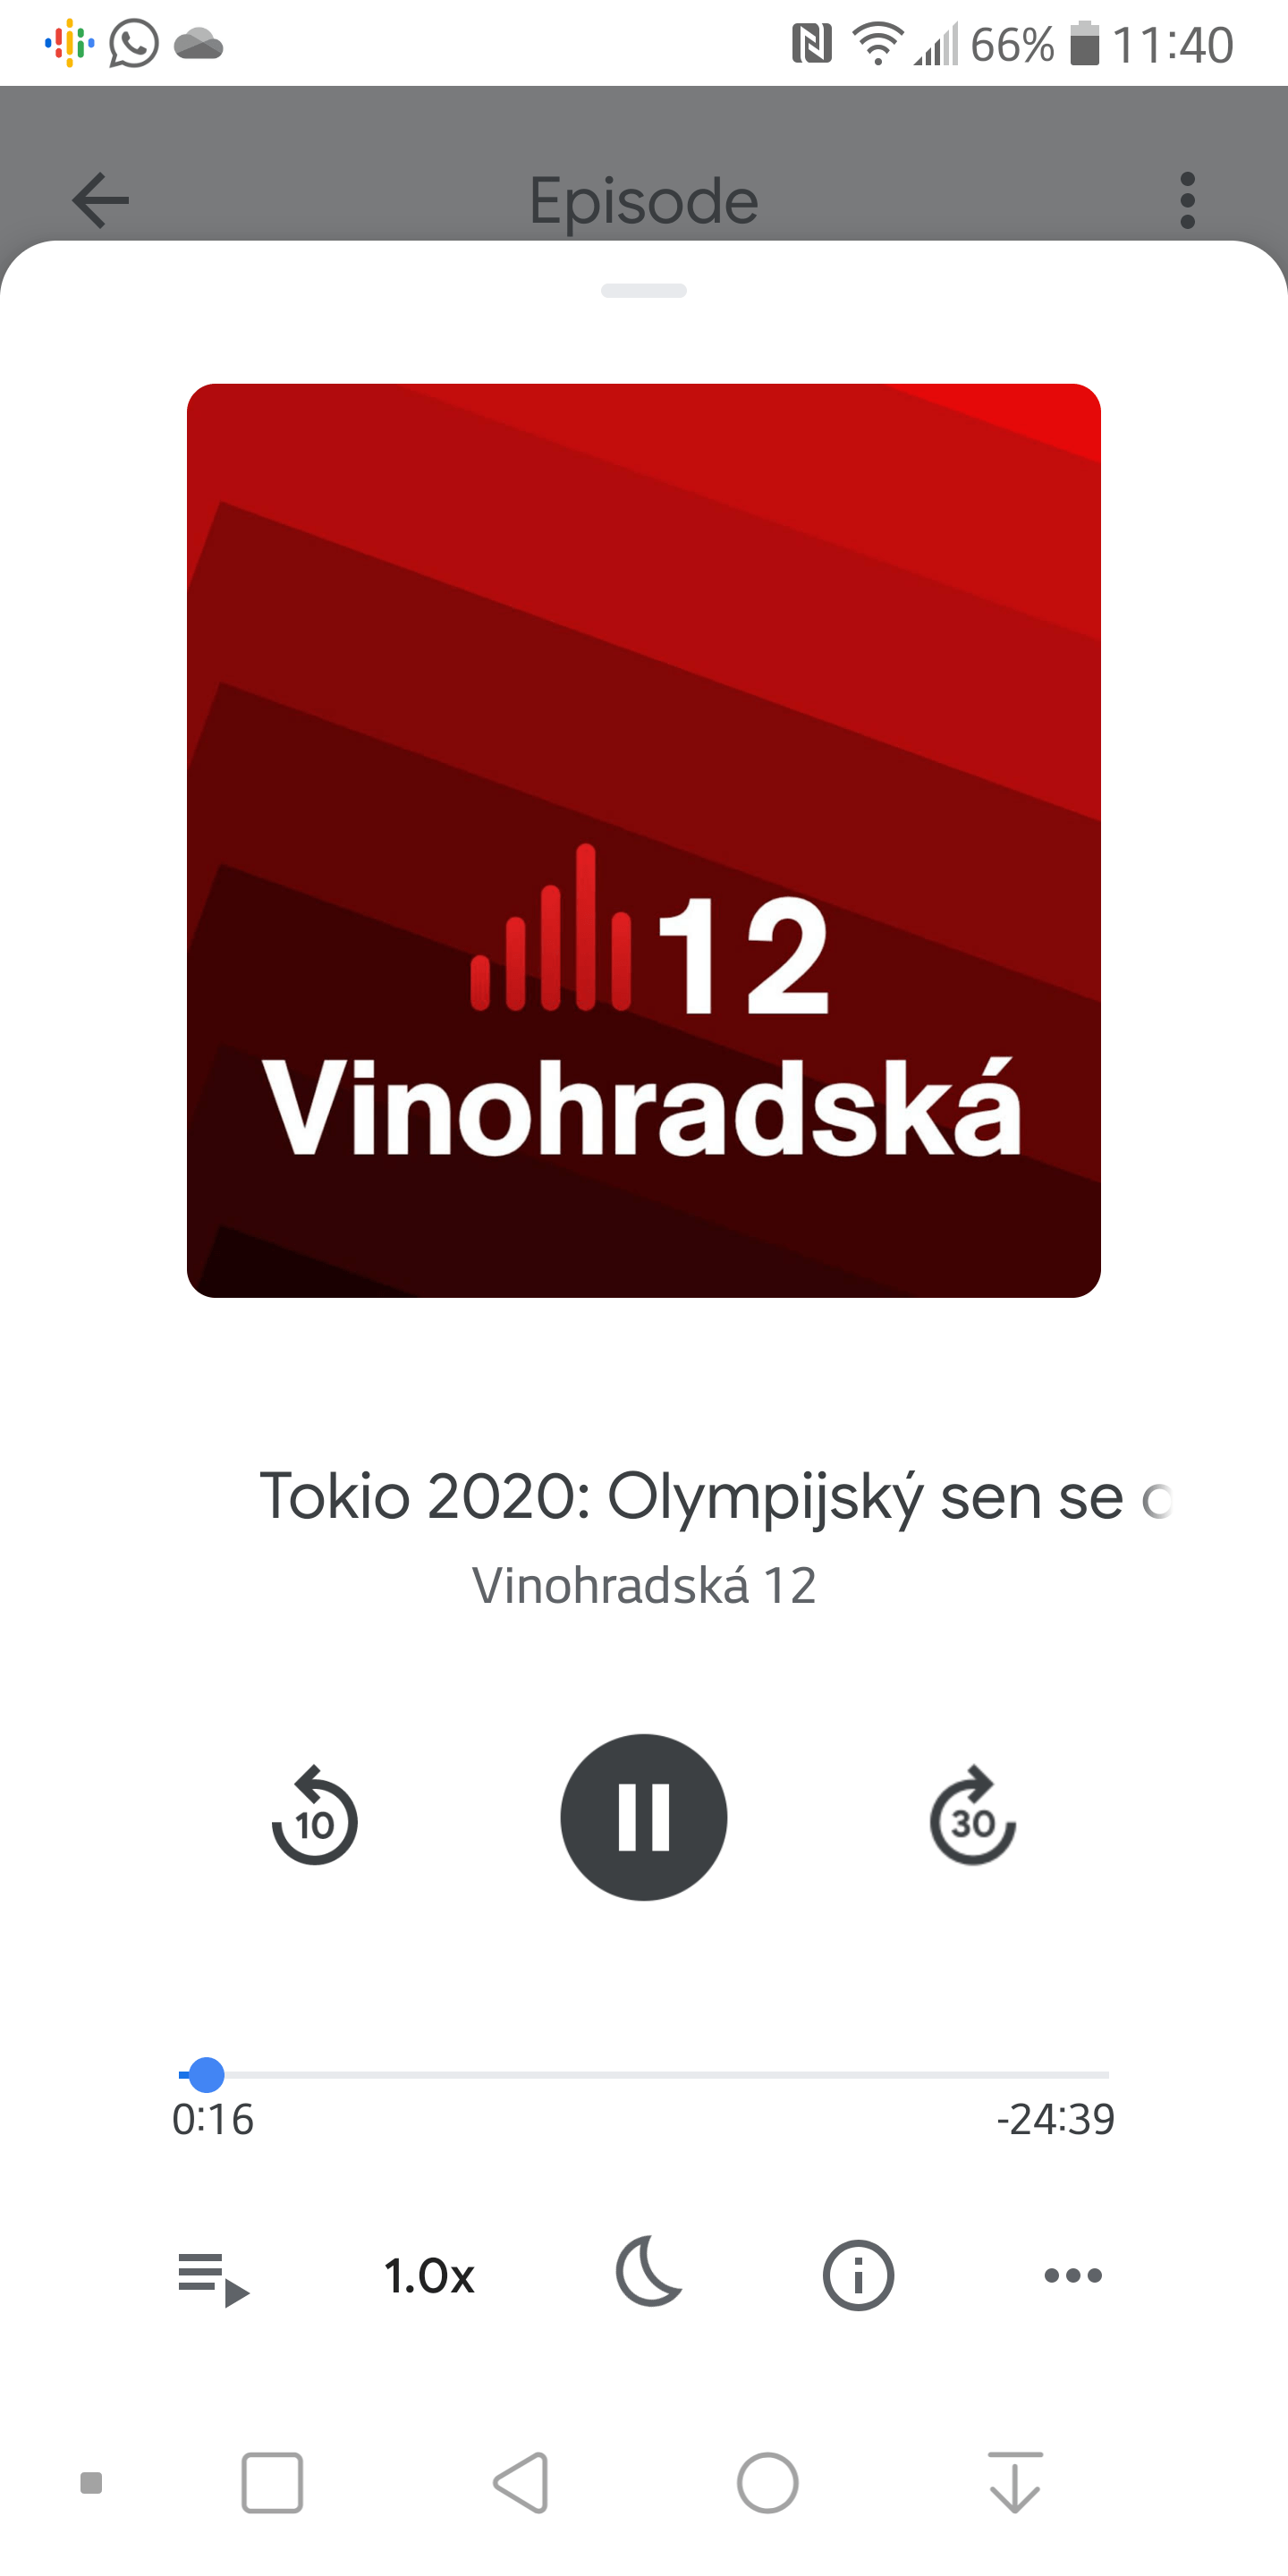 google podcasts redesign 2020 1